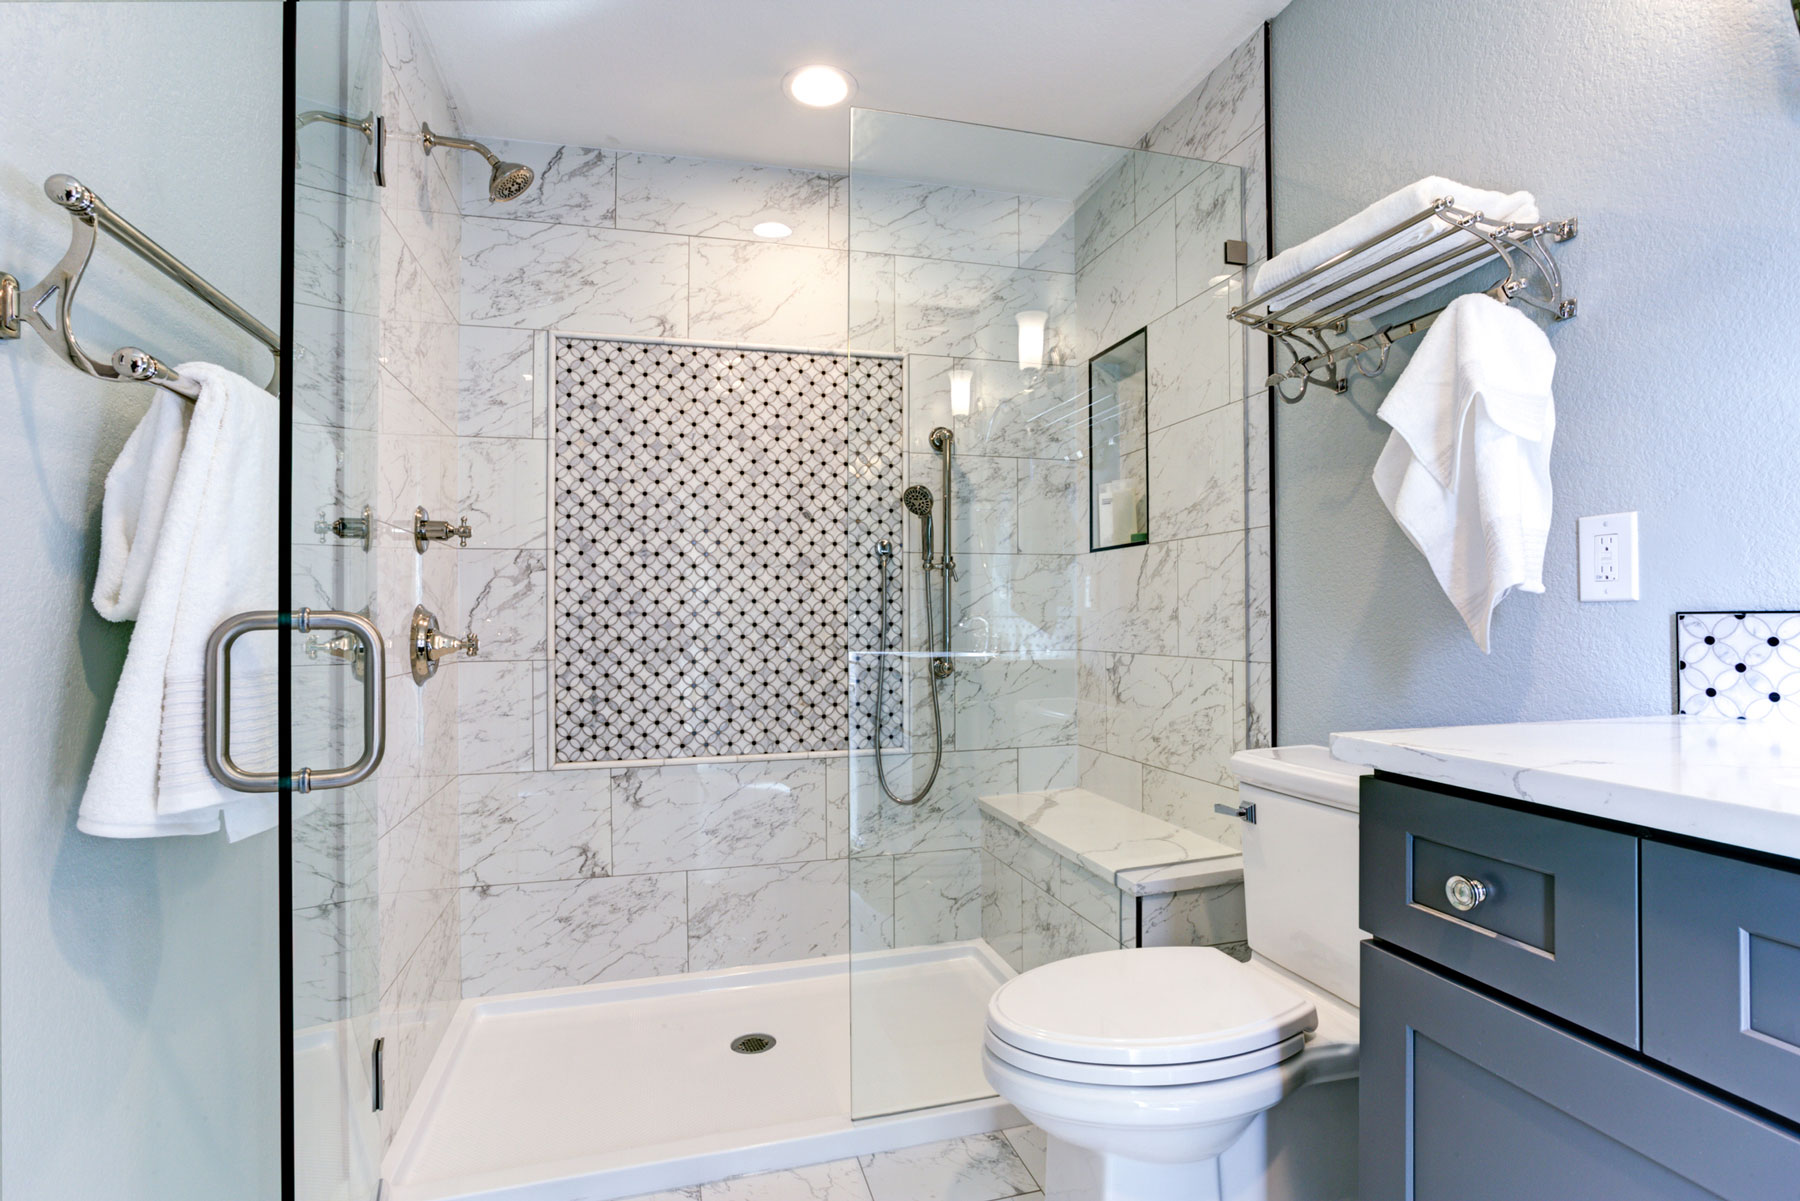 Bathroom Design Tricks for a Cleaner-Looking Bathroom - Marble Tiled Bathroom